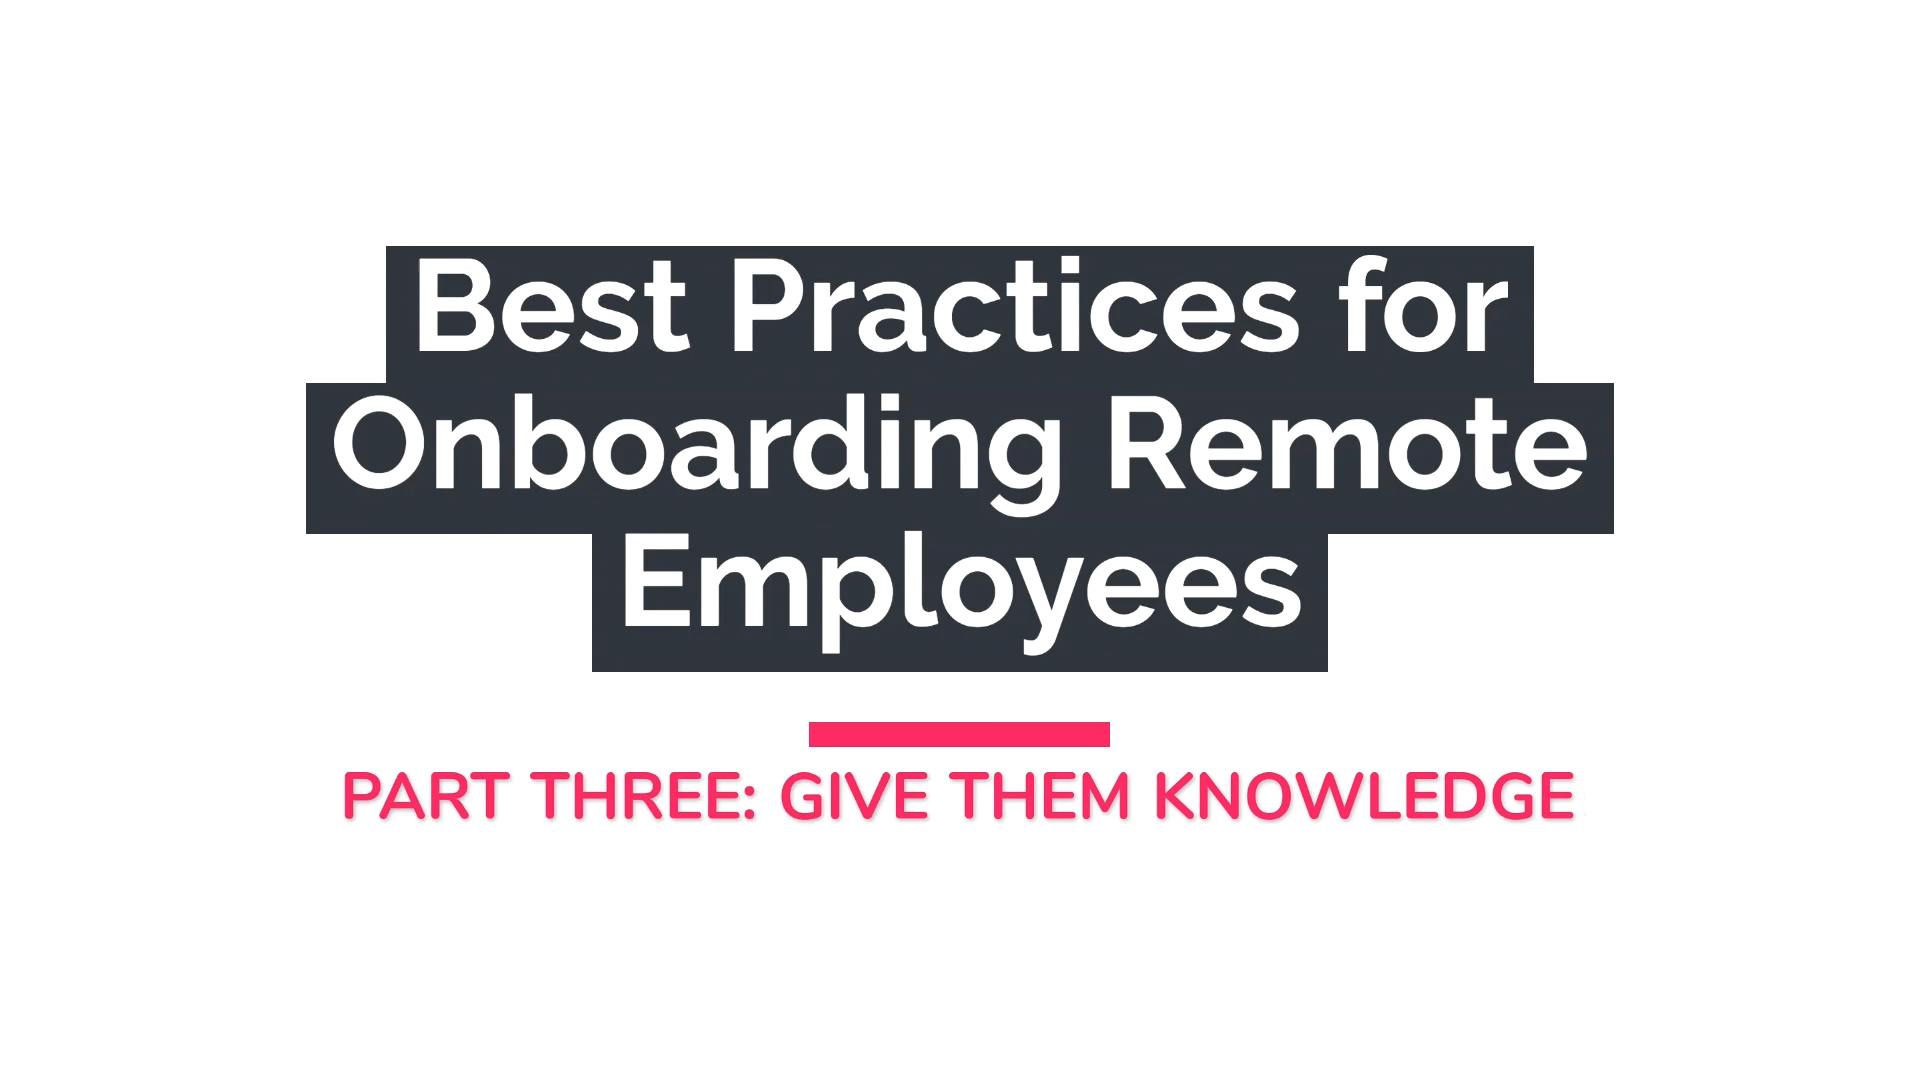 Onboarding new employees remotely: Giving knowledge